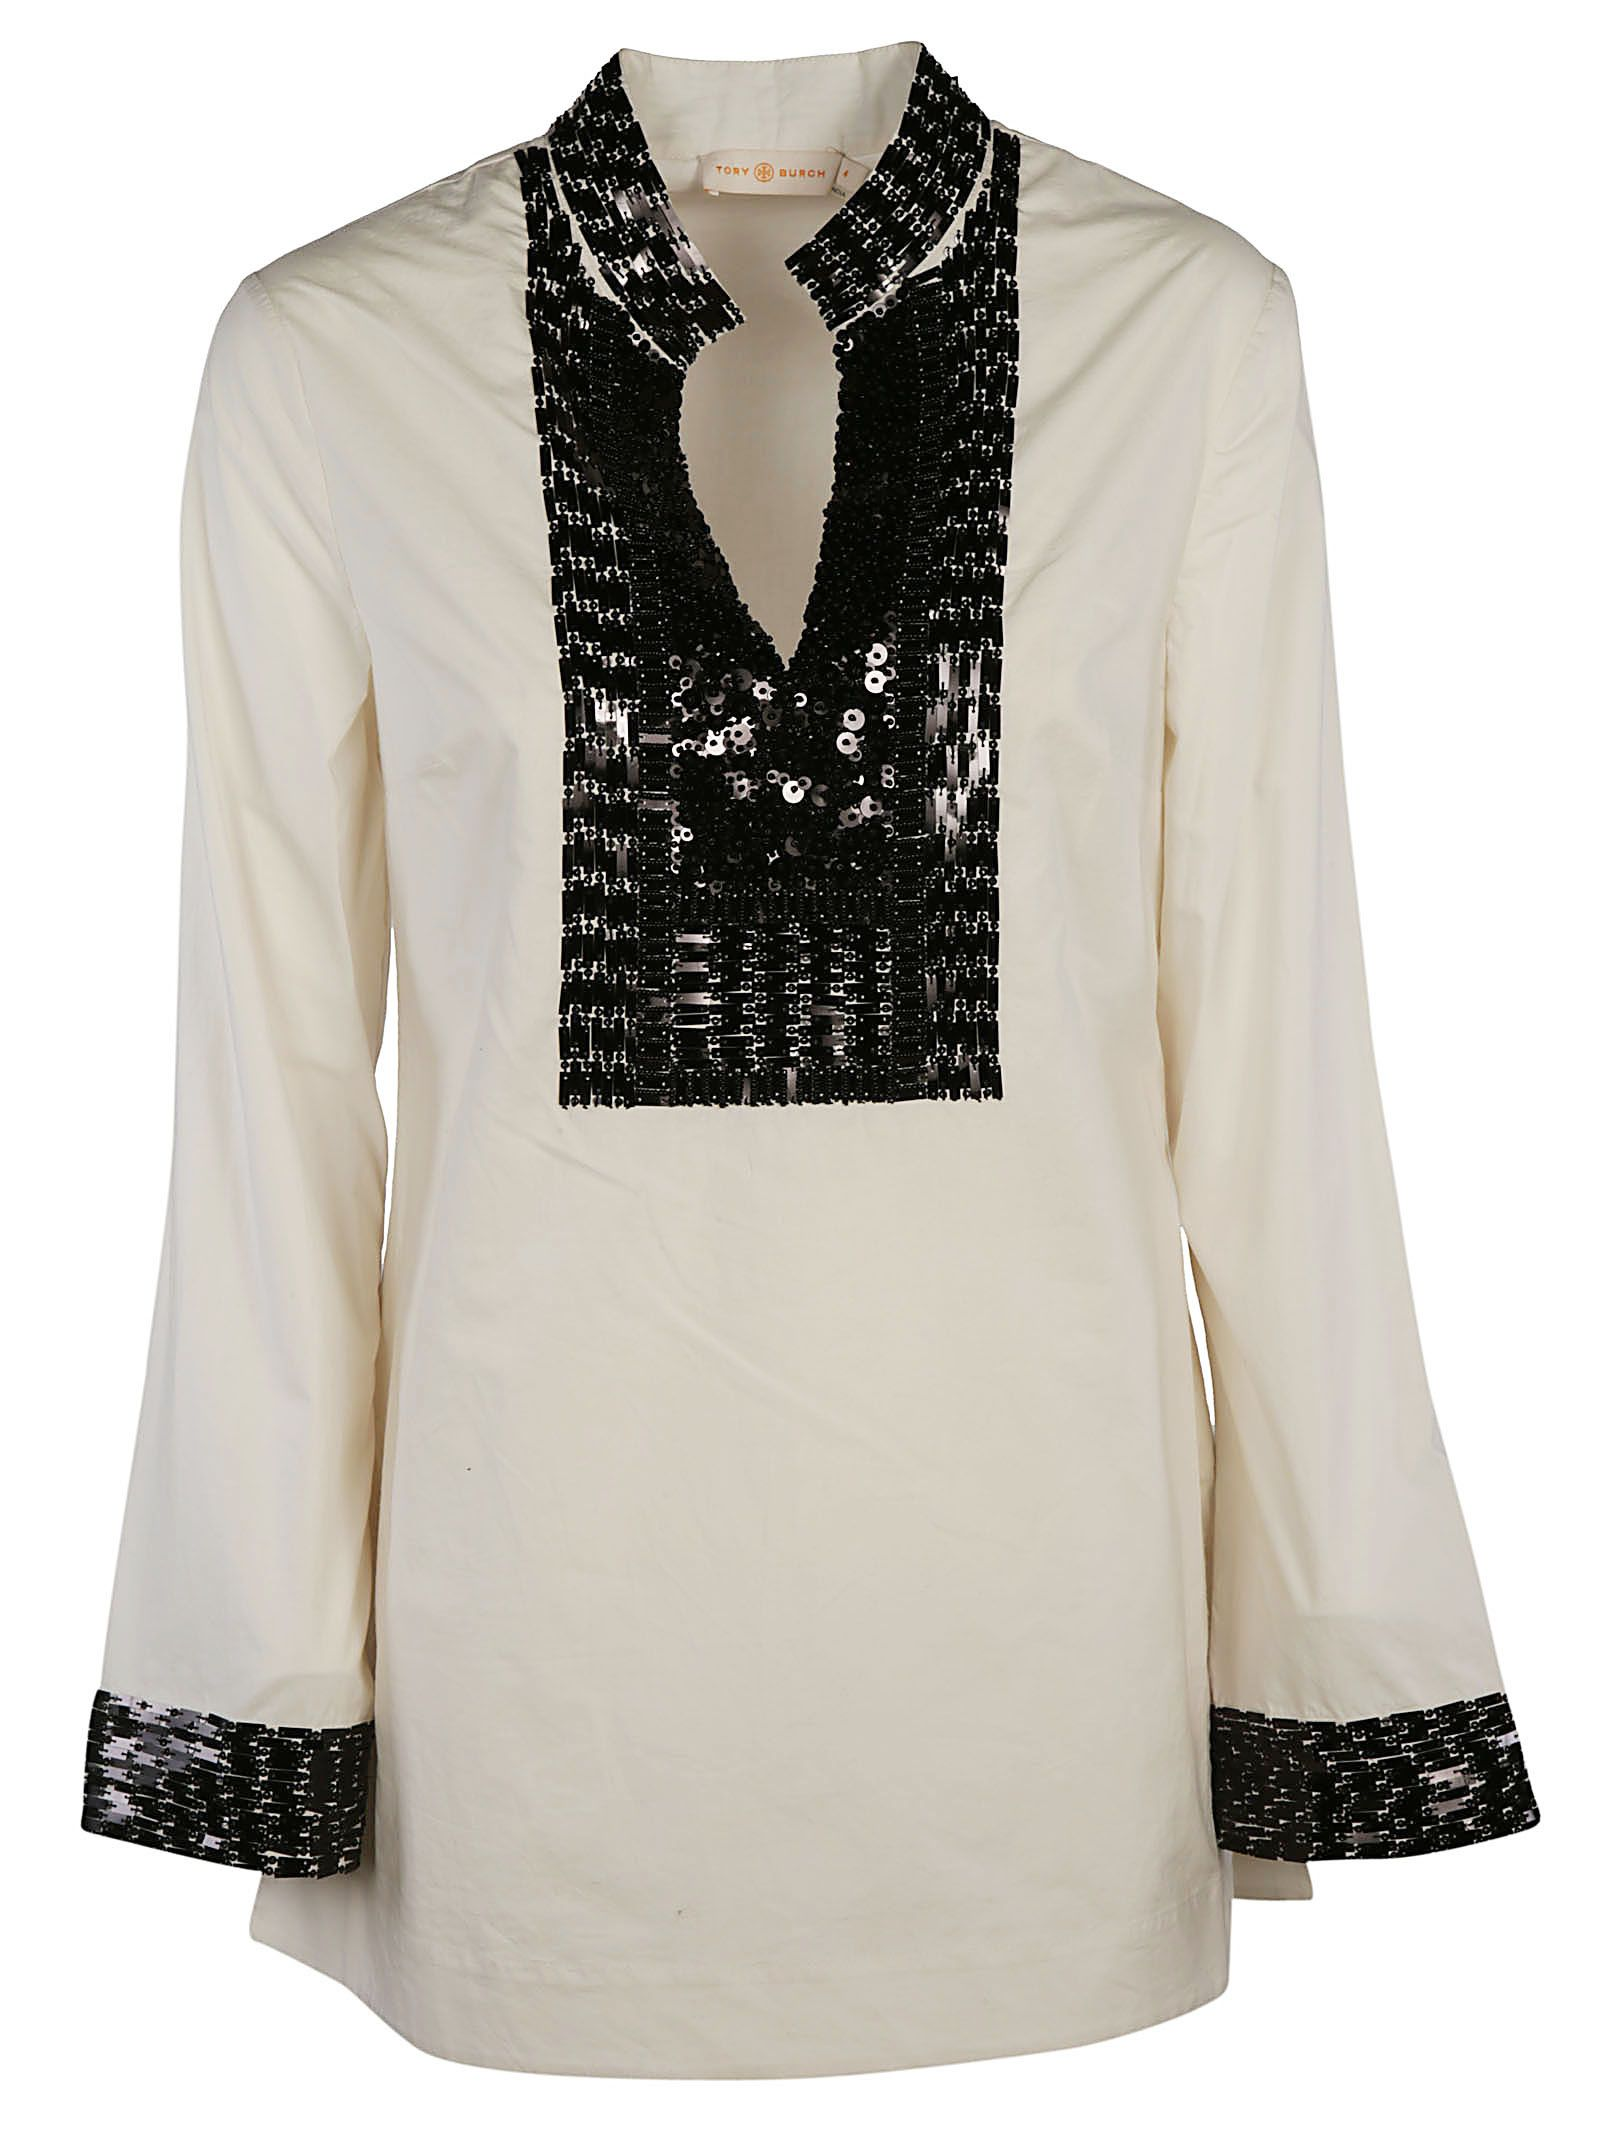 3c5870fc4c9b Tory Burch Tory Burch Embellished Tory Tunic Top - White - 10544112 ...